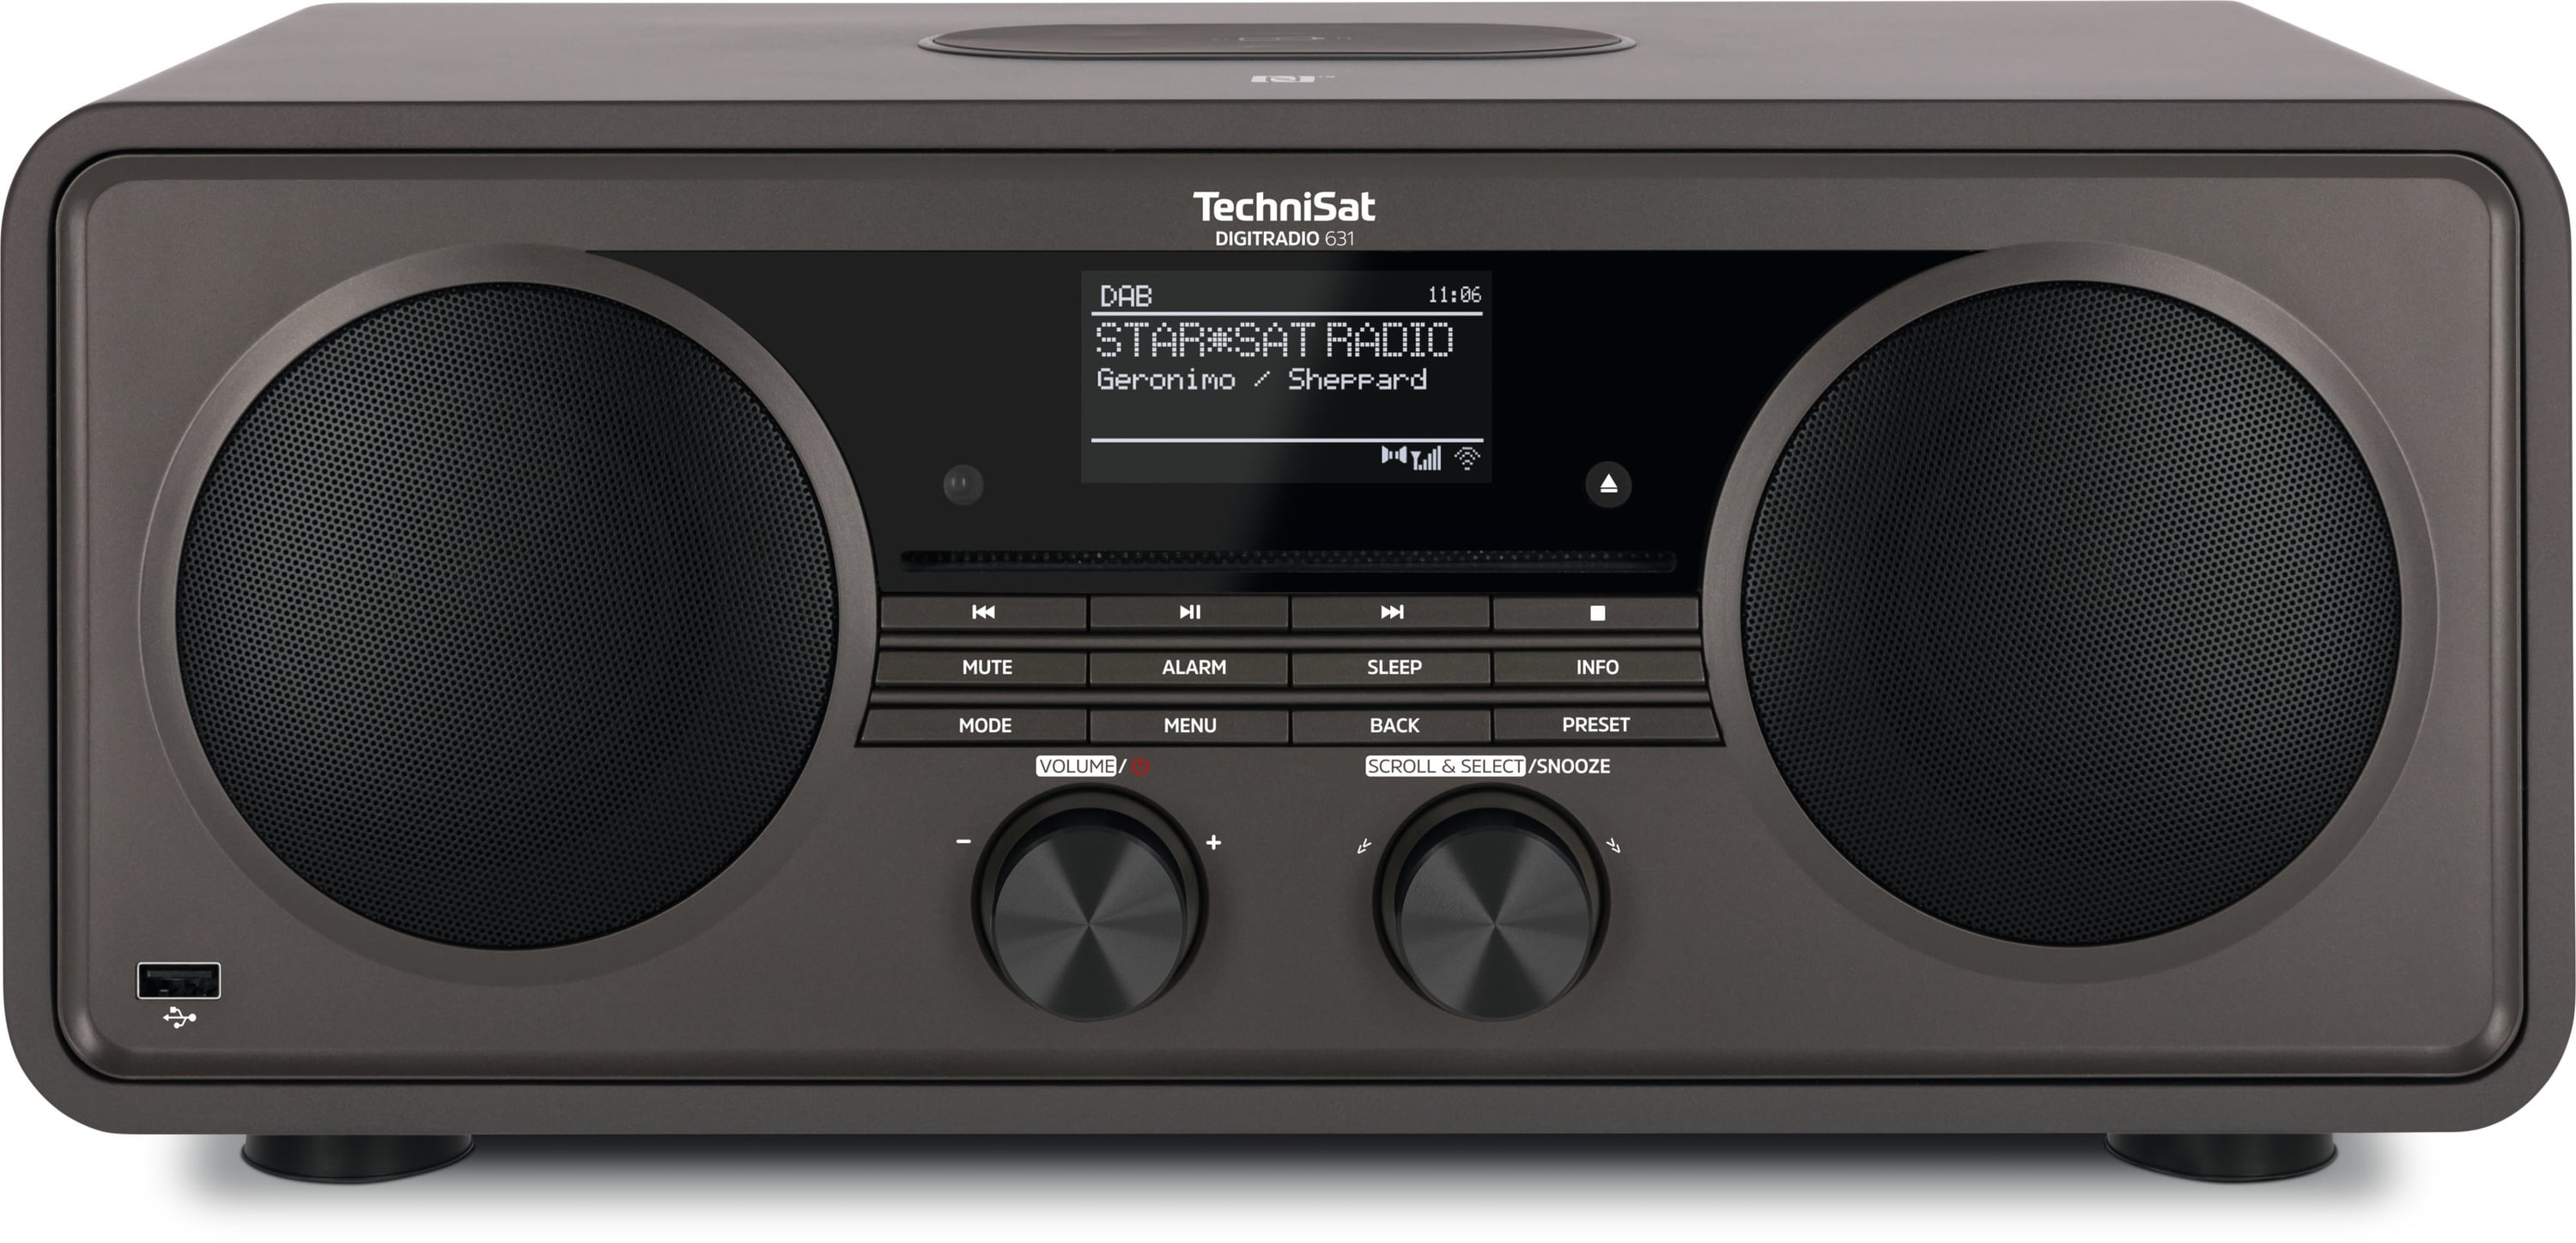 TechniSat DIGITRADIO 631 für 388,95 Euro